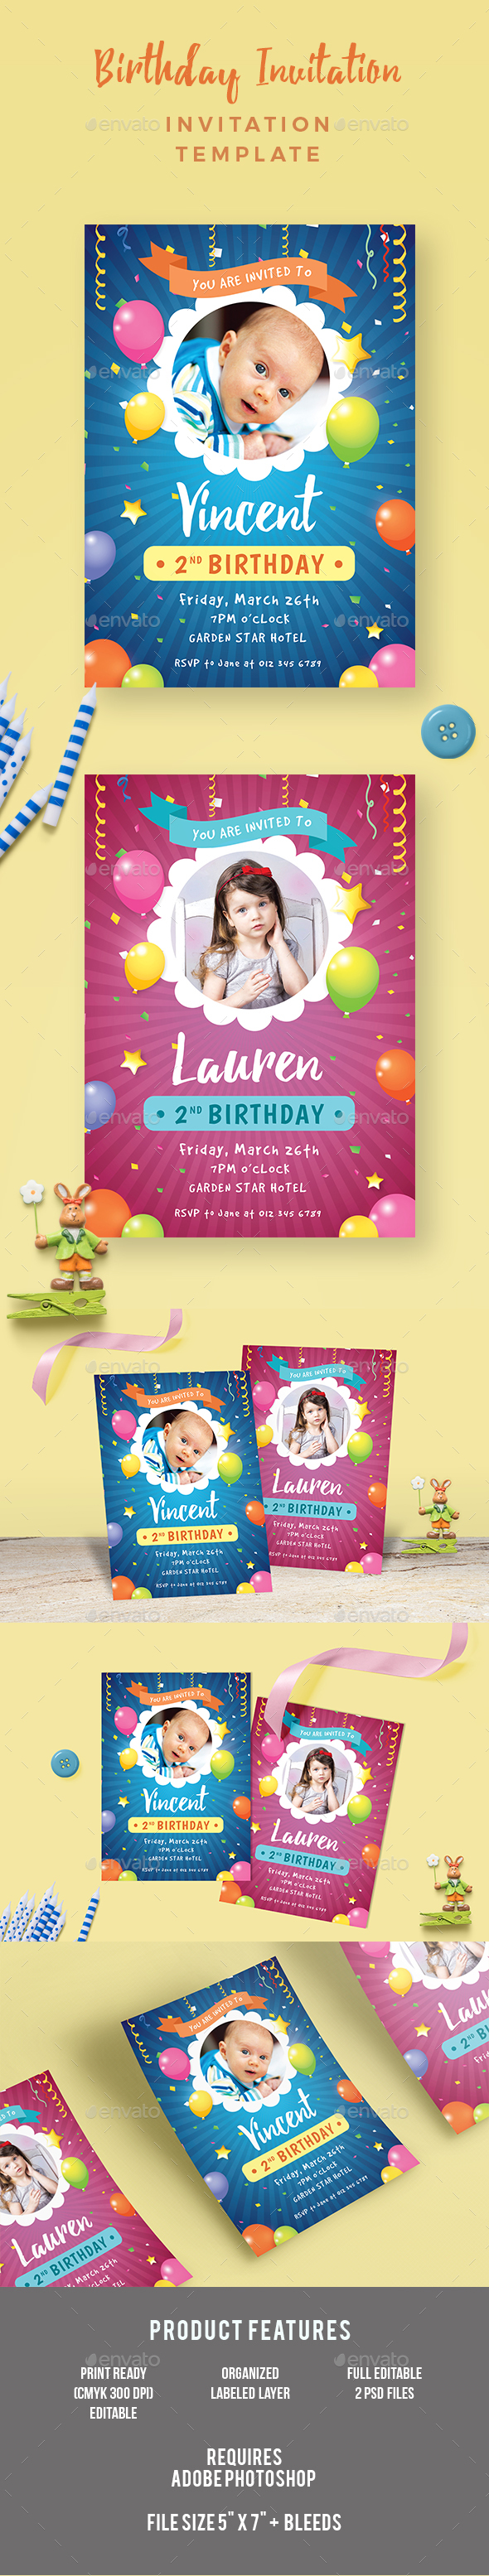 Kids Birthday Invitation - Invitations Cards & Invites